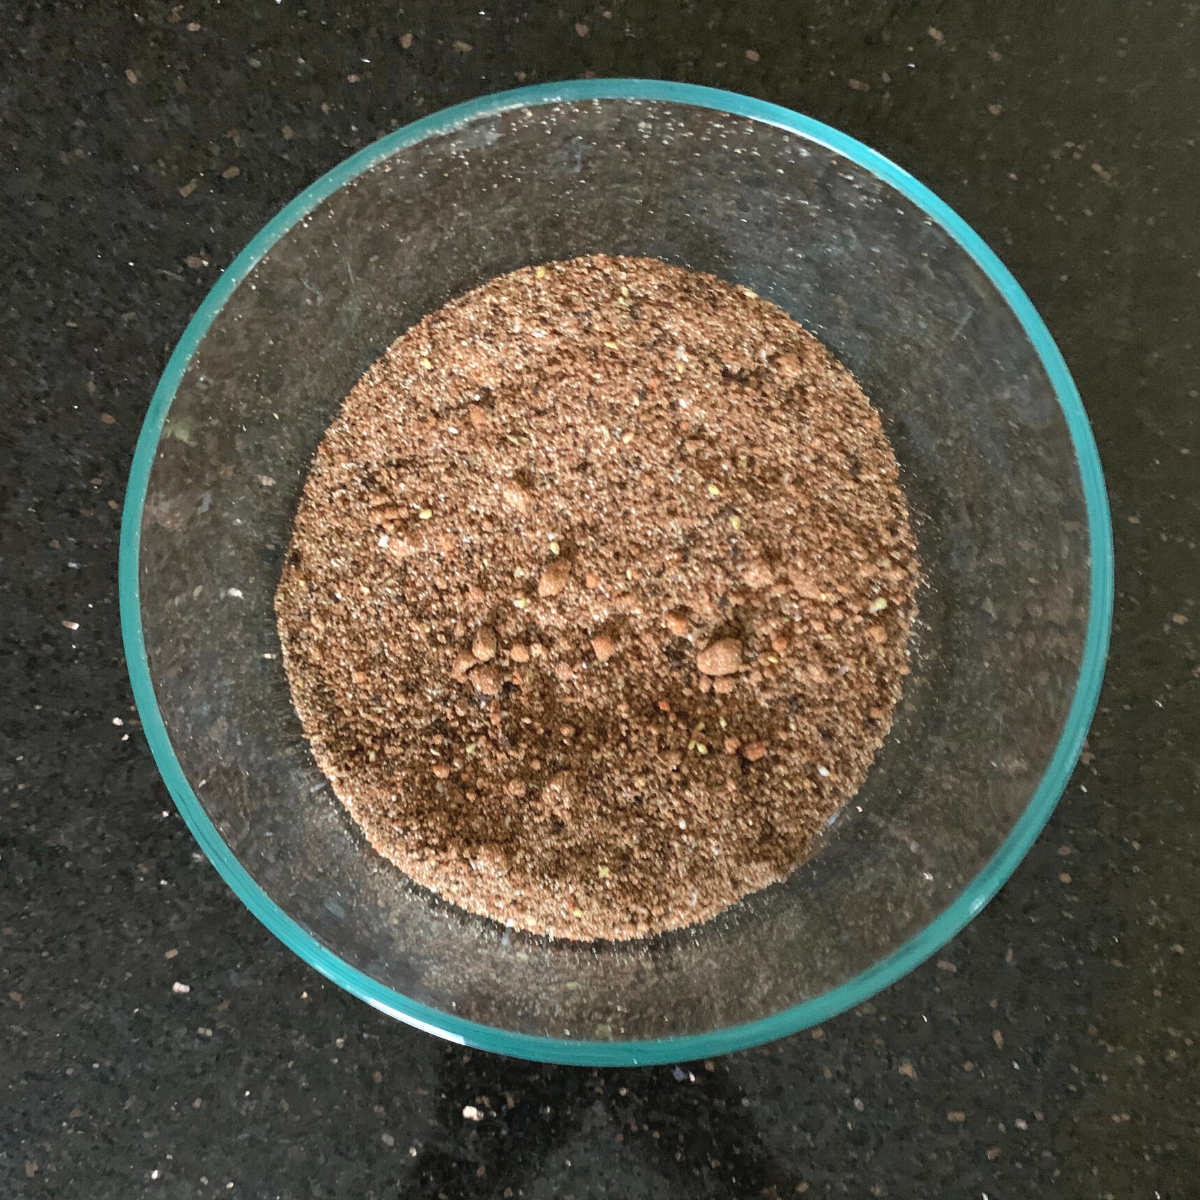 Espresso Dave's Coffee Spice Dry Rub after mixing